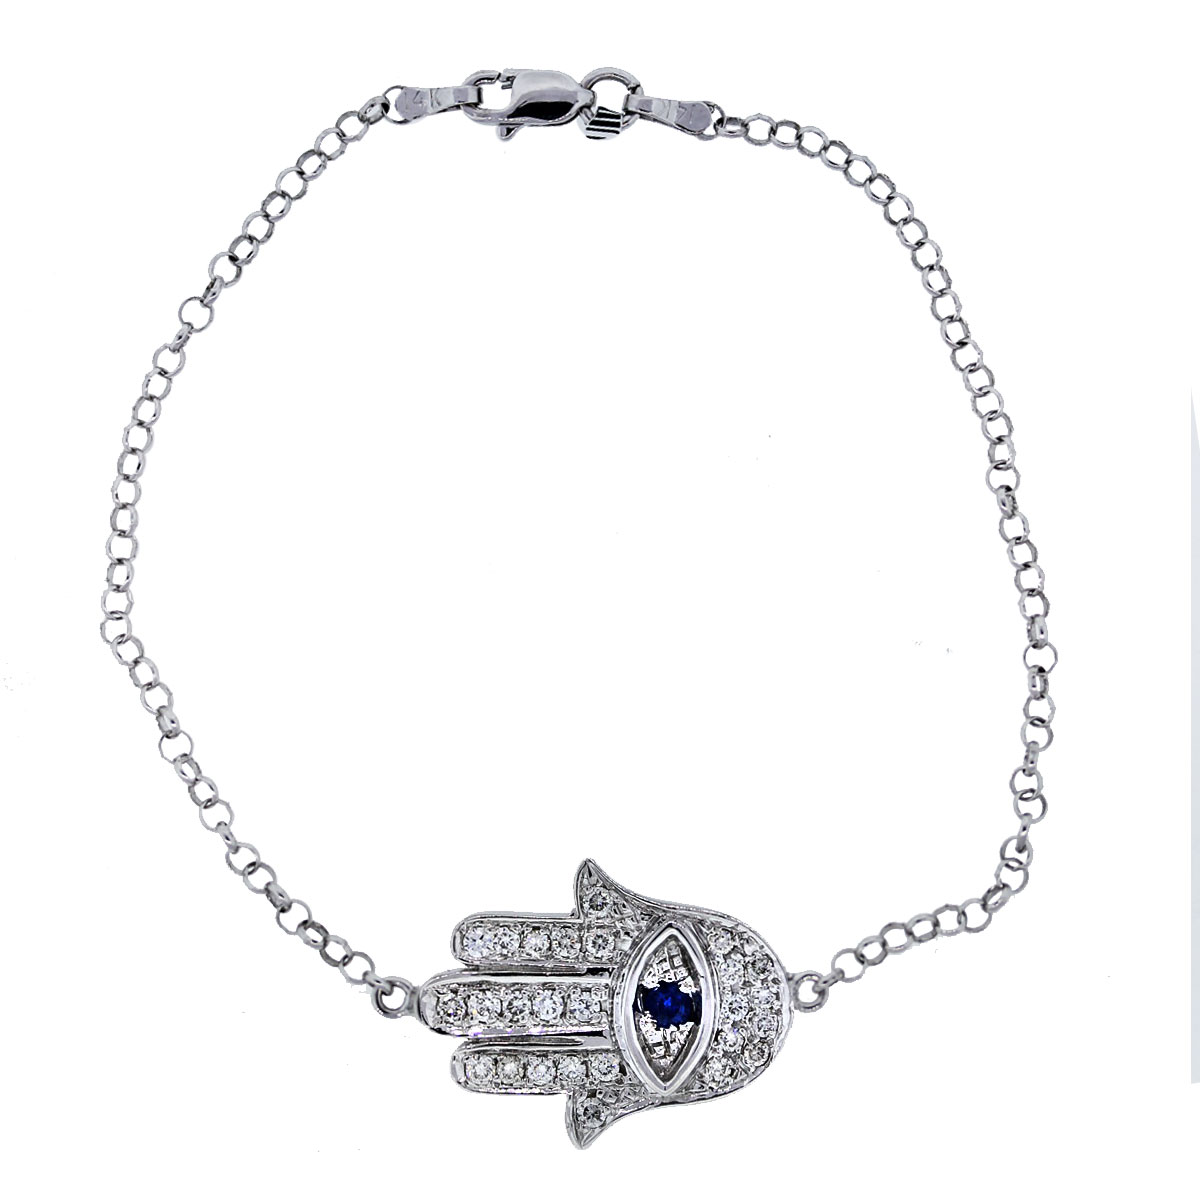 Hamsa bracelet with diamonds and sapphires